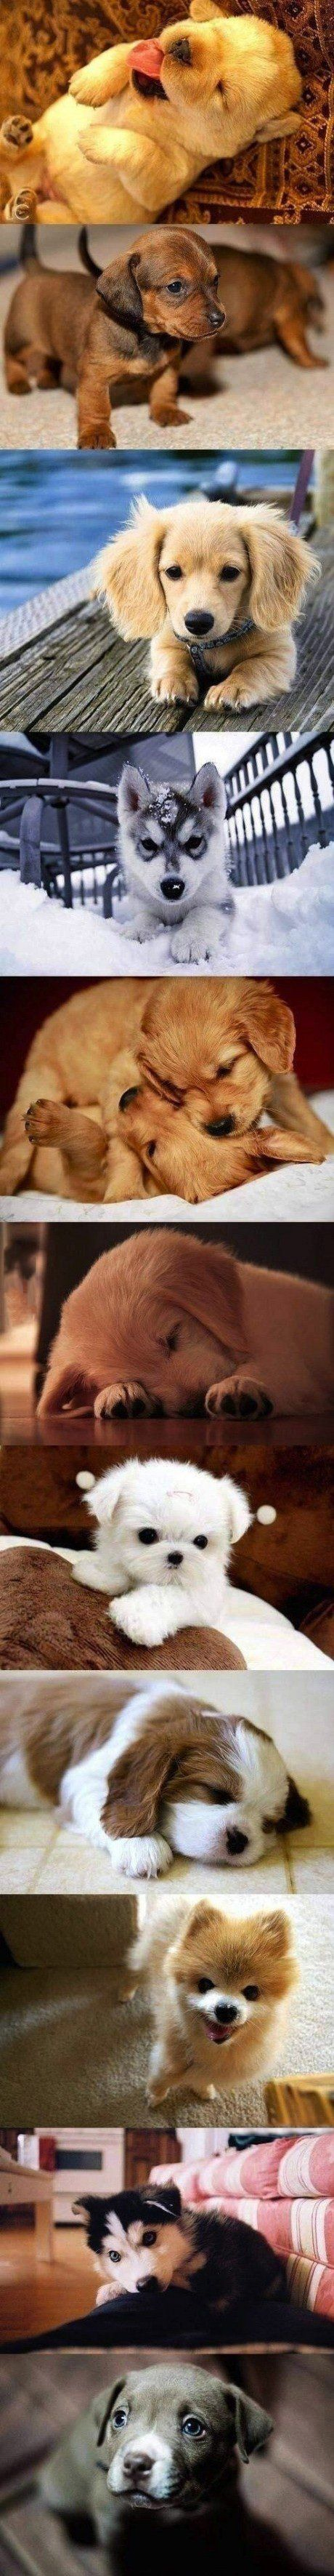 Cuteness Overload. When I grow up, I'm going to foster puppies. It's inevitable.